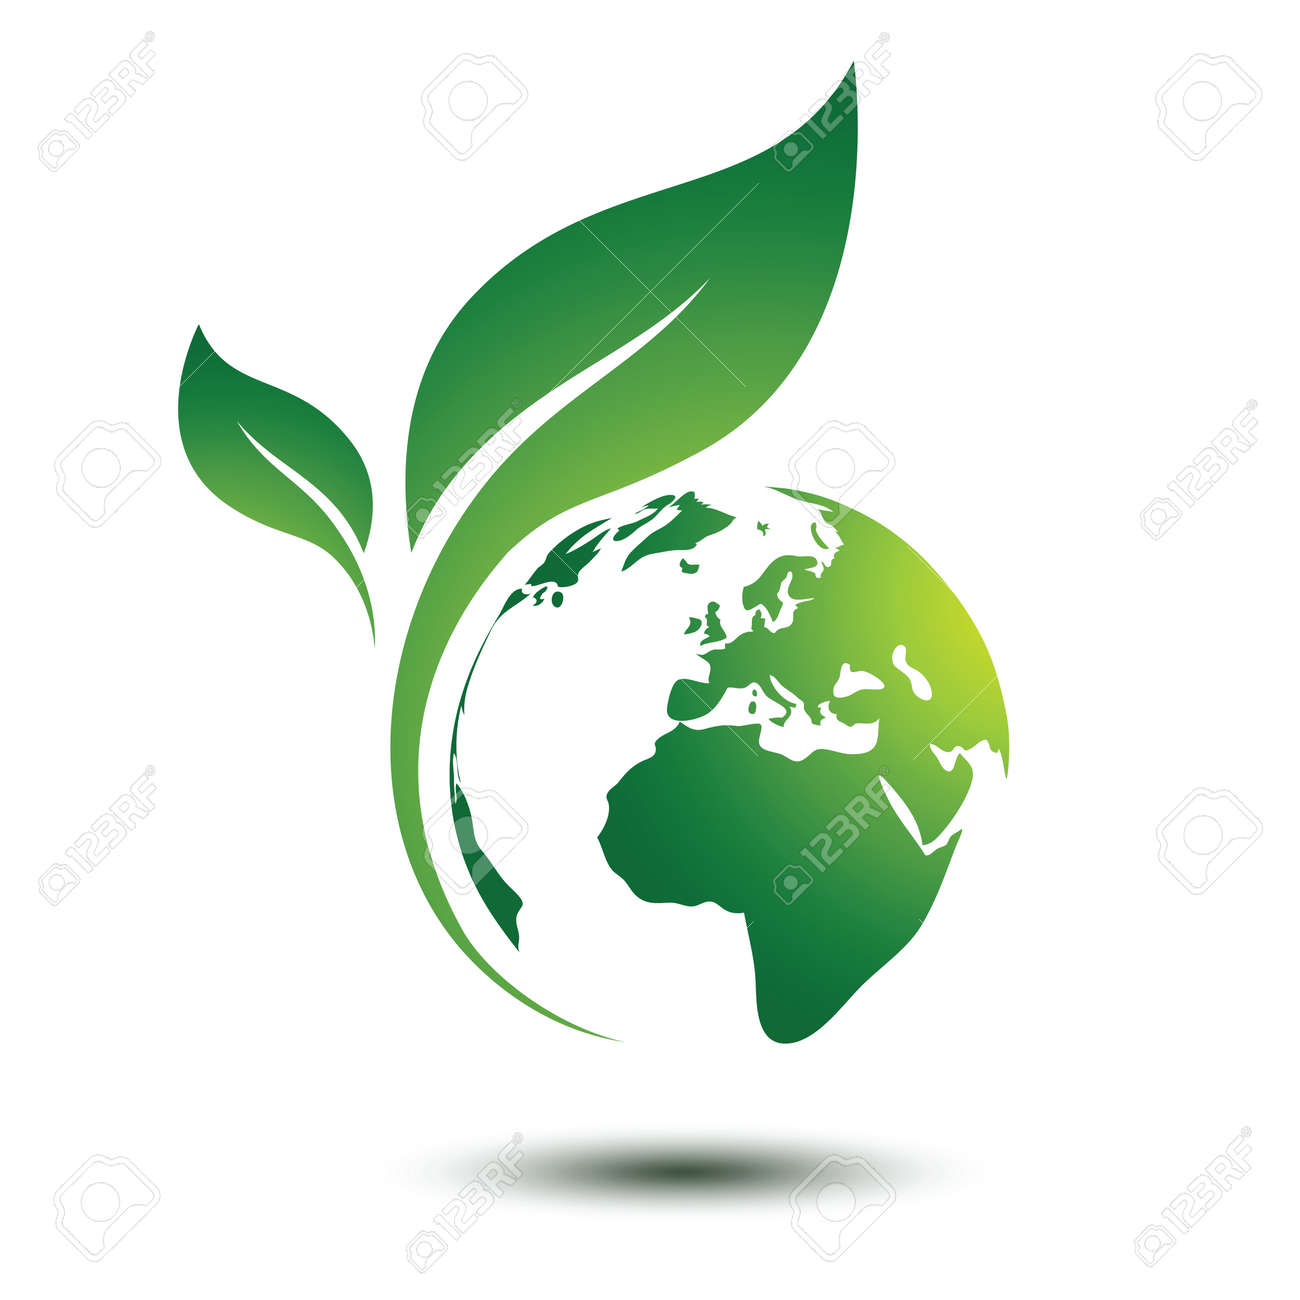 Green earth concept with leaves,vector illustration - 60133680